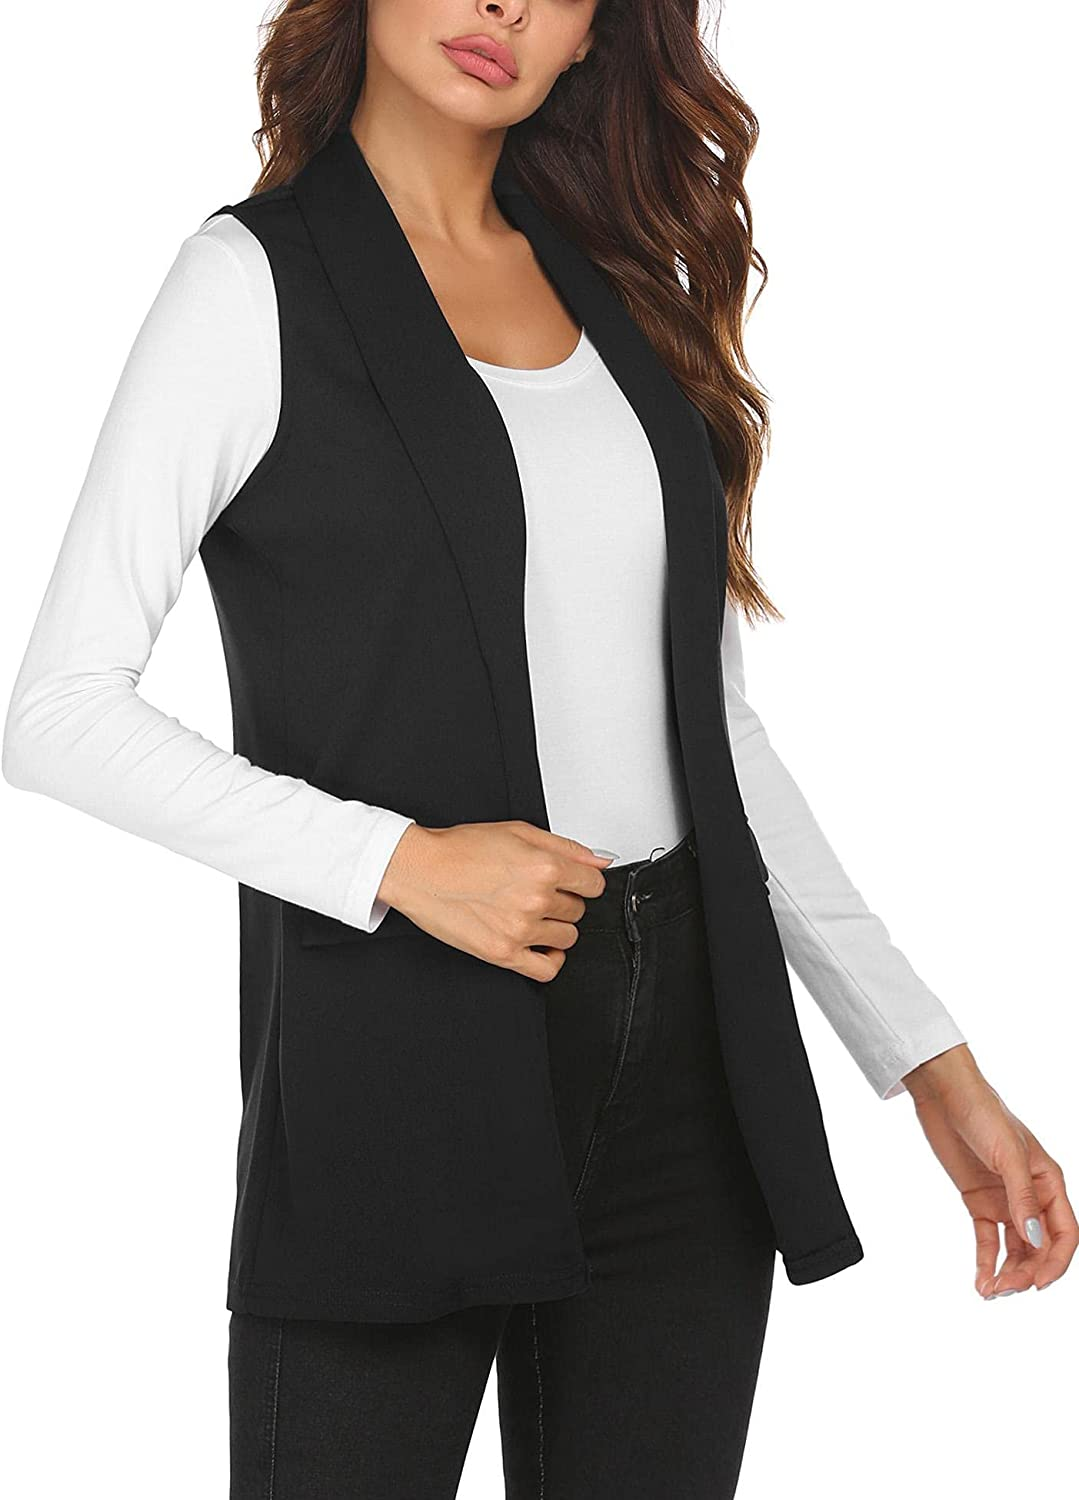 HOTLOOX Women's Sleeveless Vest Long Cardigan Vests Casual Open Front Trench Coat Jacket with Pockets S-XXL